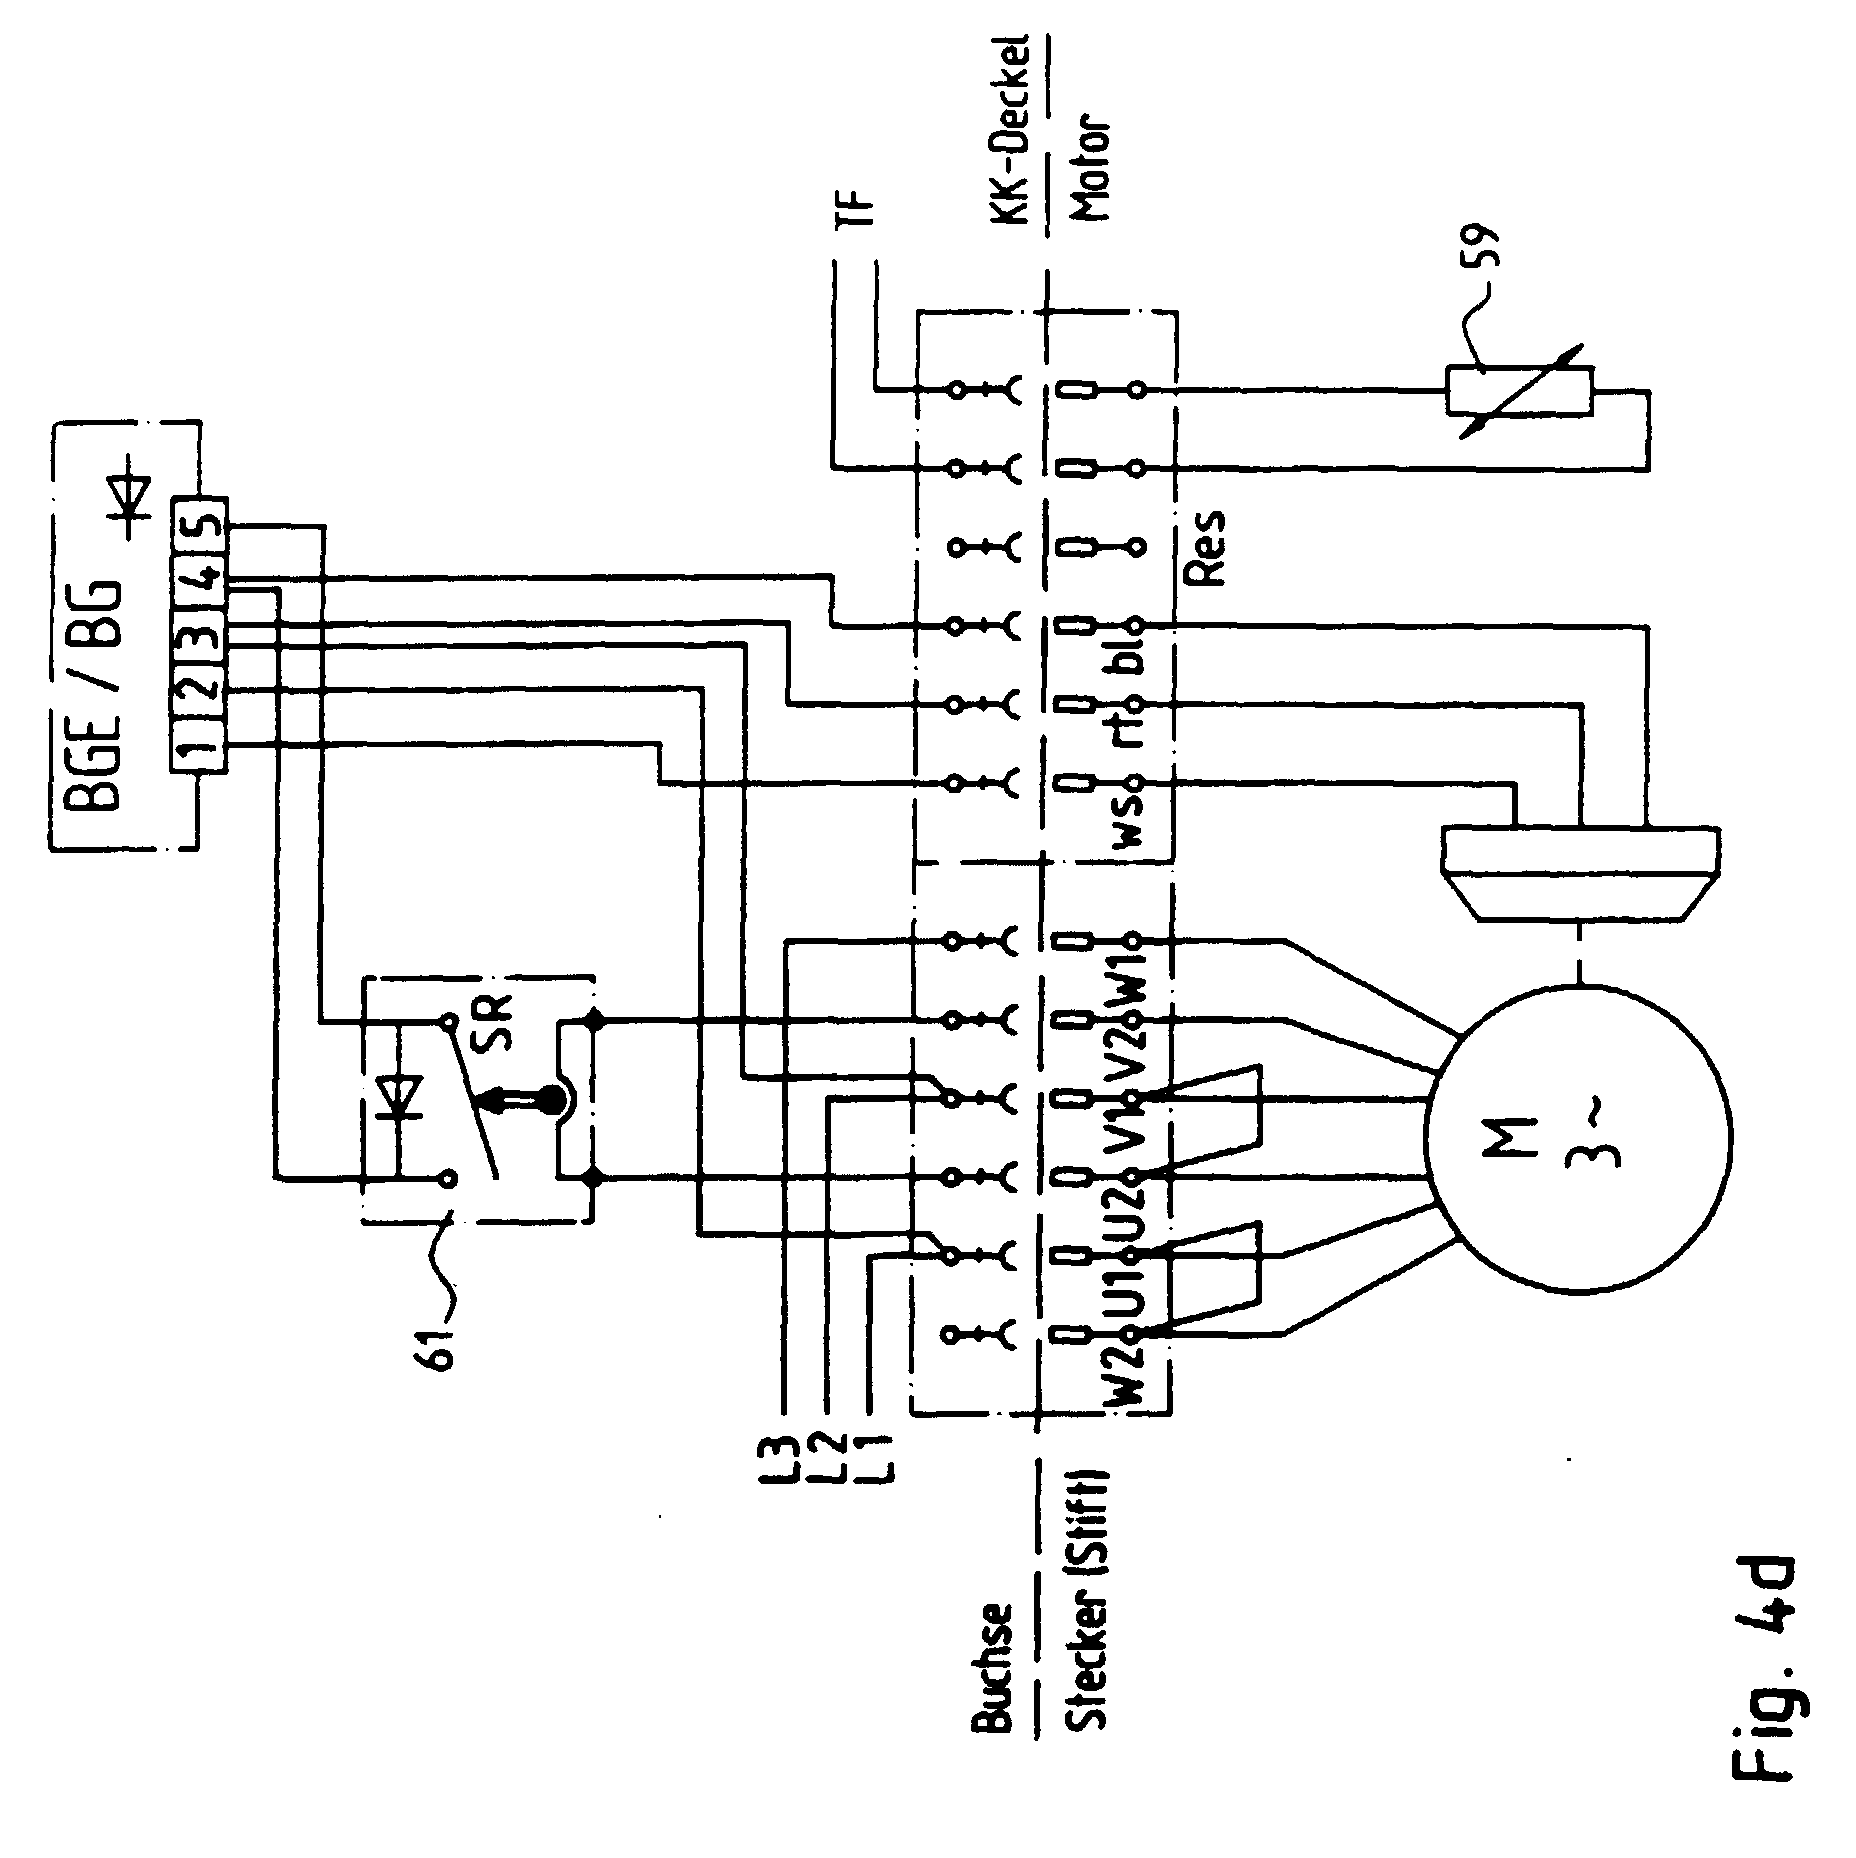 patent ep0582777b1 motor connection box in particular for electric motors patents